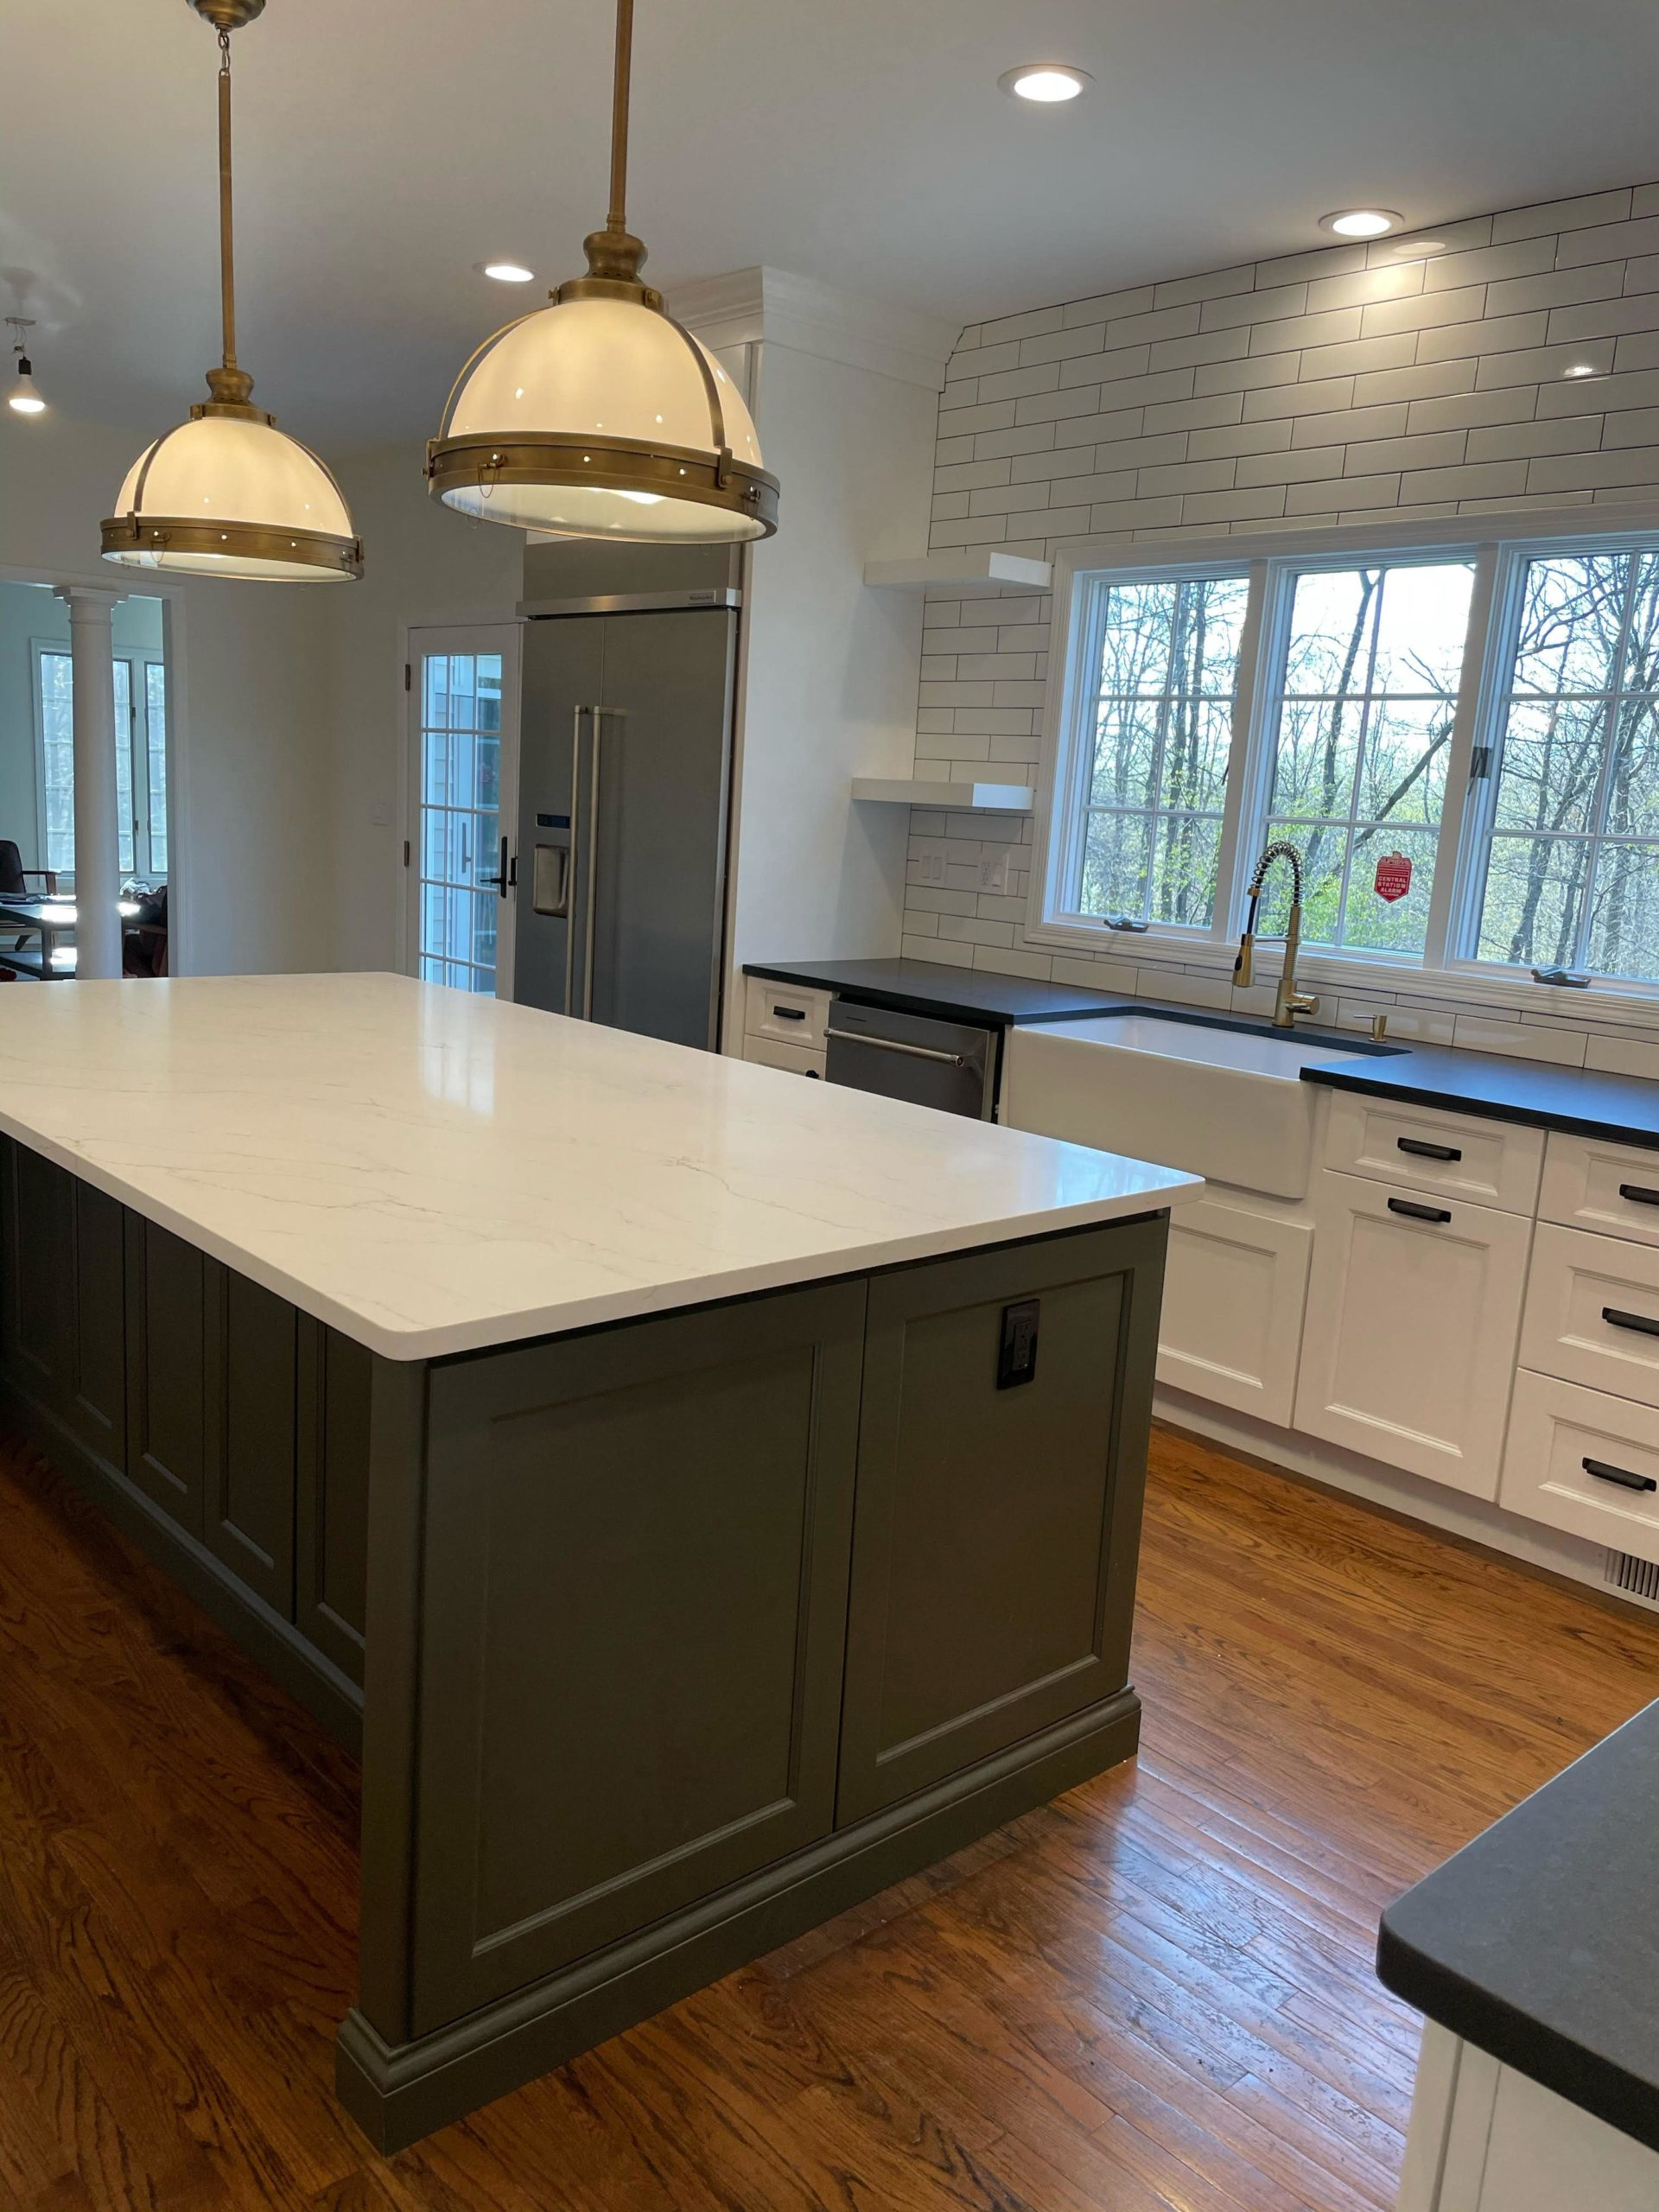 Farmhouse Kitchen Remodel Project in Long Valley, NJ